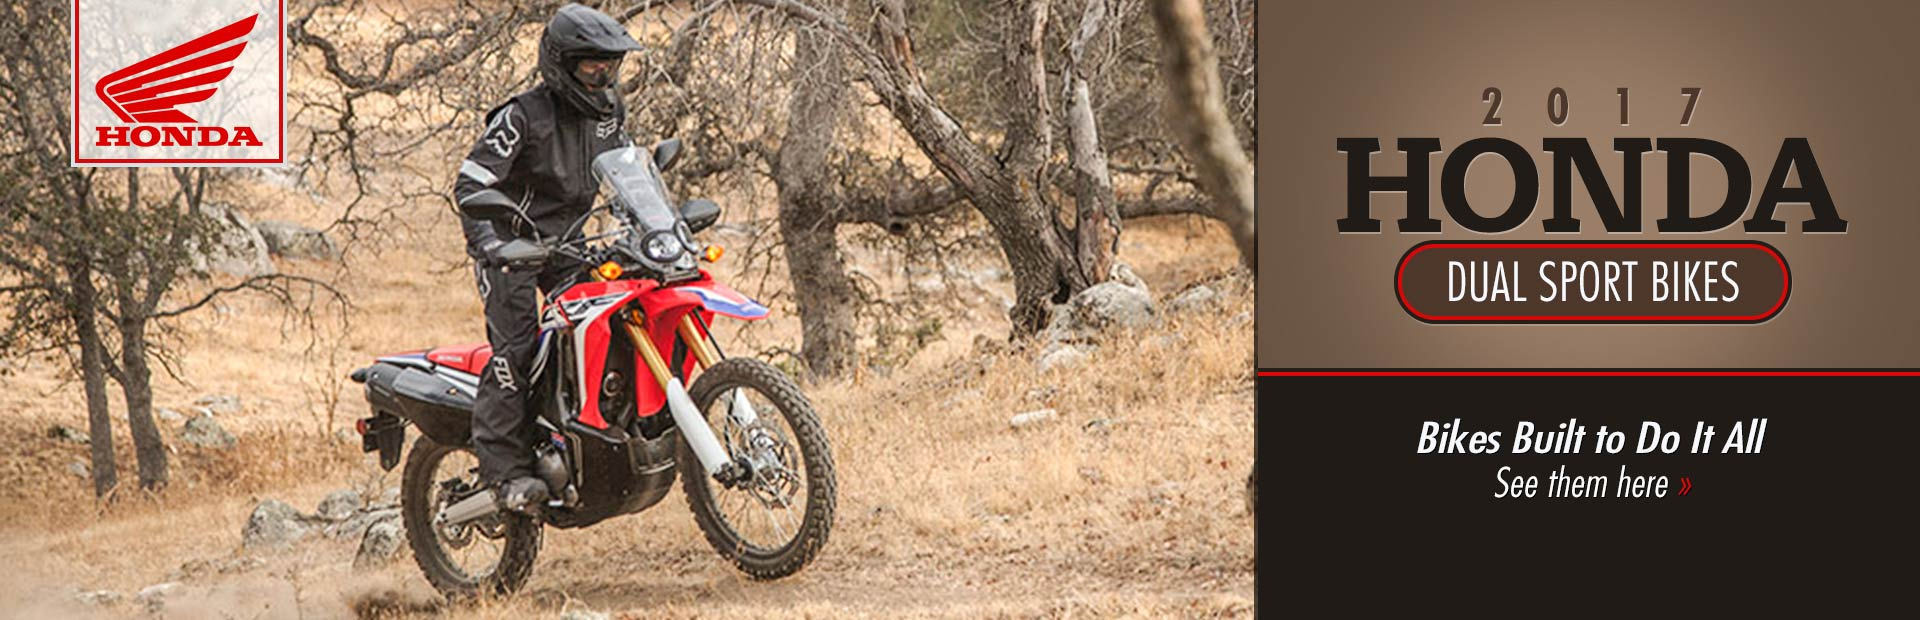 2017 Honda Dual Sport Bikes: Click here to view the models.